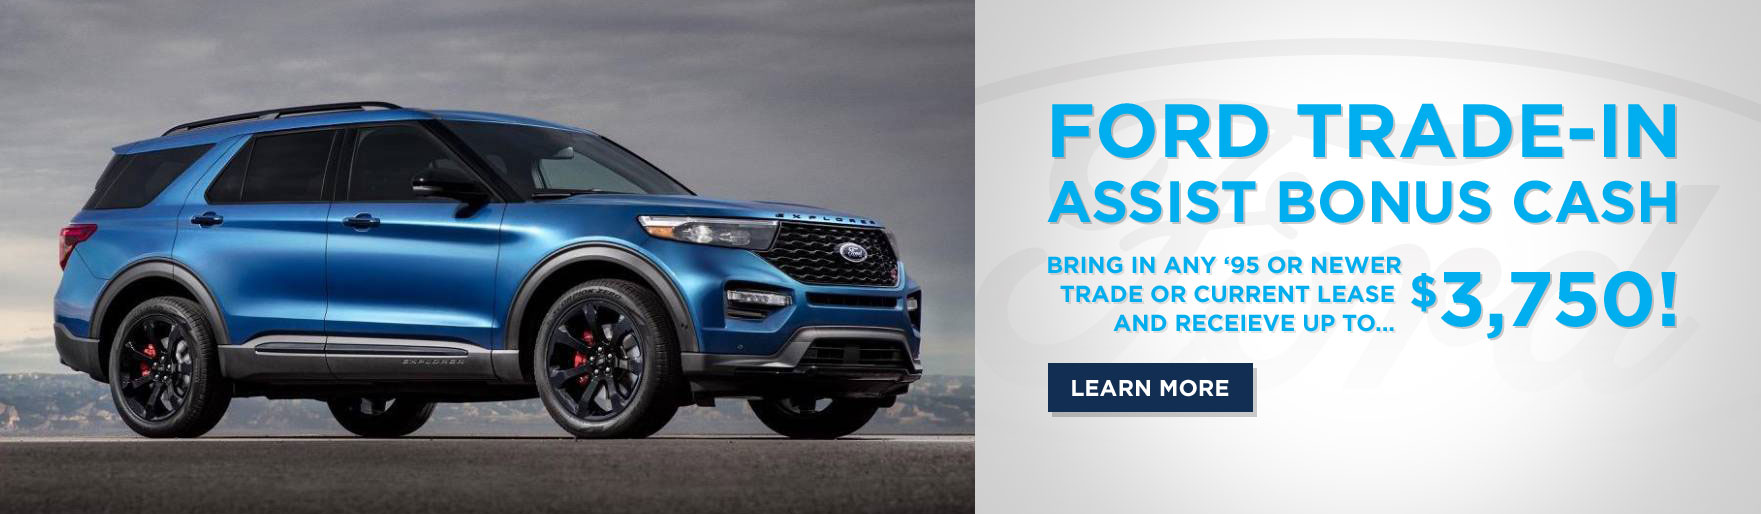 Ford Trade-In assist bonus cash